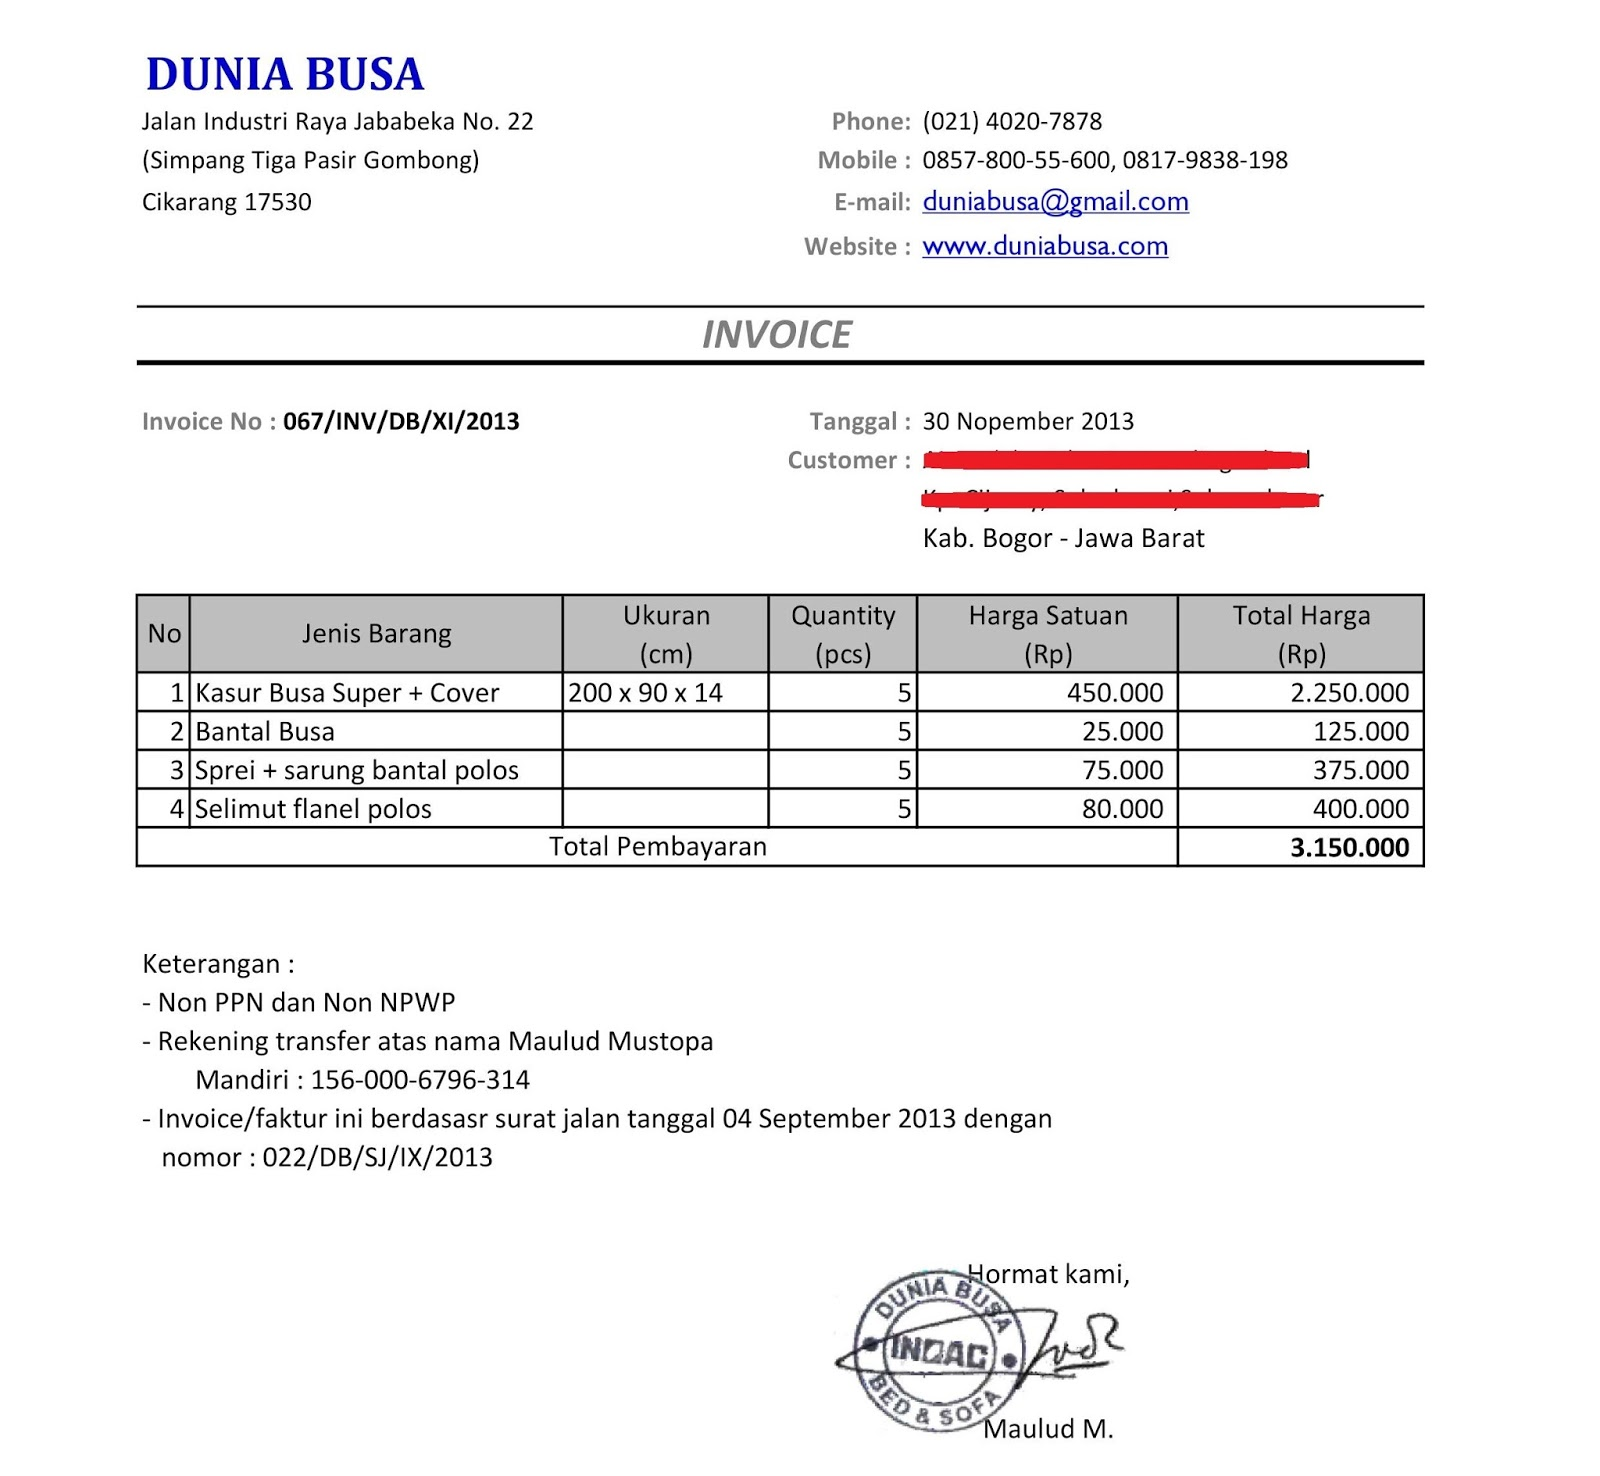 Angkajituus  Unusual Free Invoice Online  Create Invoice Online  Invoice Template  With Goodlooking Contoh Format Invoice Atau Surat Tagihan  Brankas Arsip  Free Invoice Online With Cute Catering Invoice Template Word Also Invoice Terms And Conditions Example In Addition Performance Invoice And Commercial Invoice Example As Well As Artist Invoice Template Additionally Labcorp Invoice From Sklepco With Angkajituus  Goodlooking Free Invoice Online  Create Invoice Online  Invoice Template  With Cute Contoh Format Invoice Atau Surat Tagihan  Brankas Arsip  Free Invoice Online And Unusual Catering Invoice Template Word Also Invoice Terms And Conditions Example In Addition Performance Invoice From Sklepco